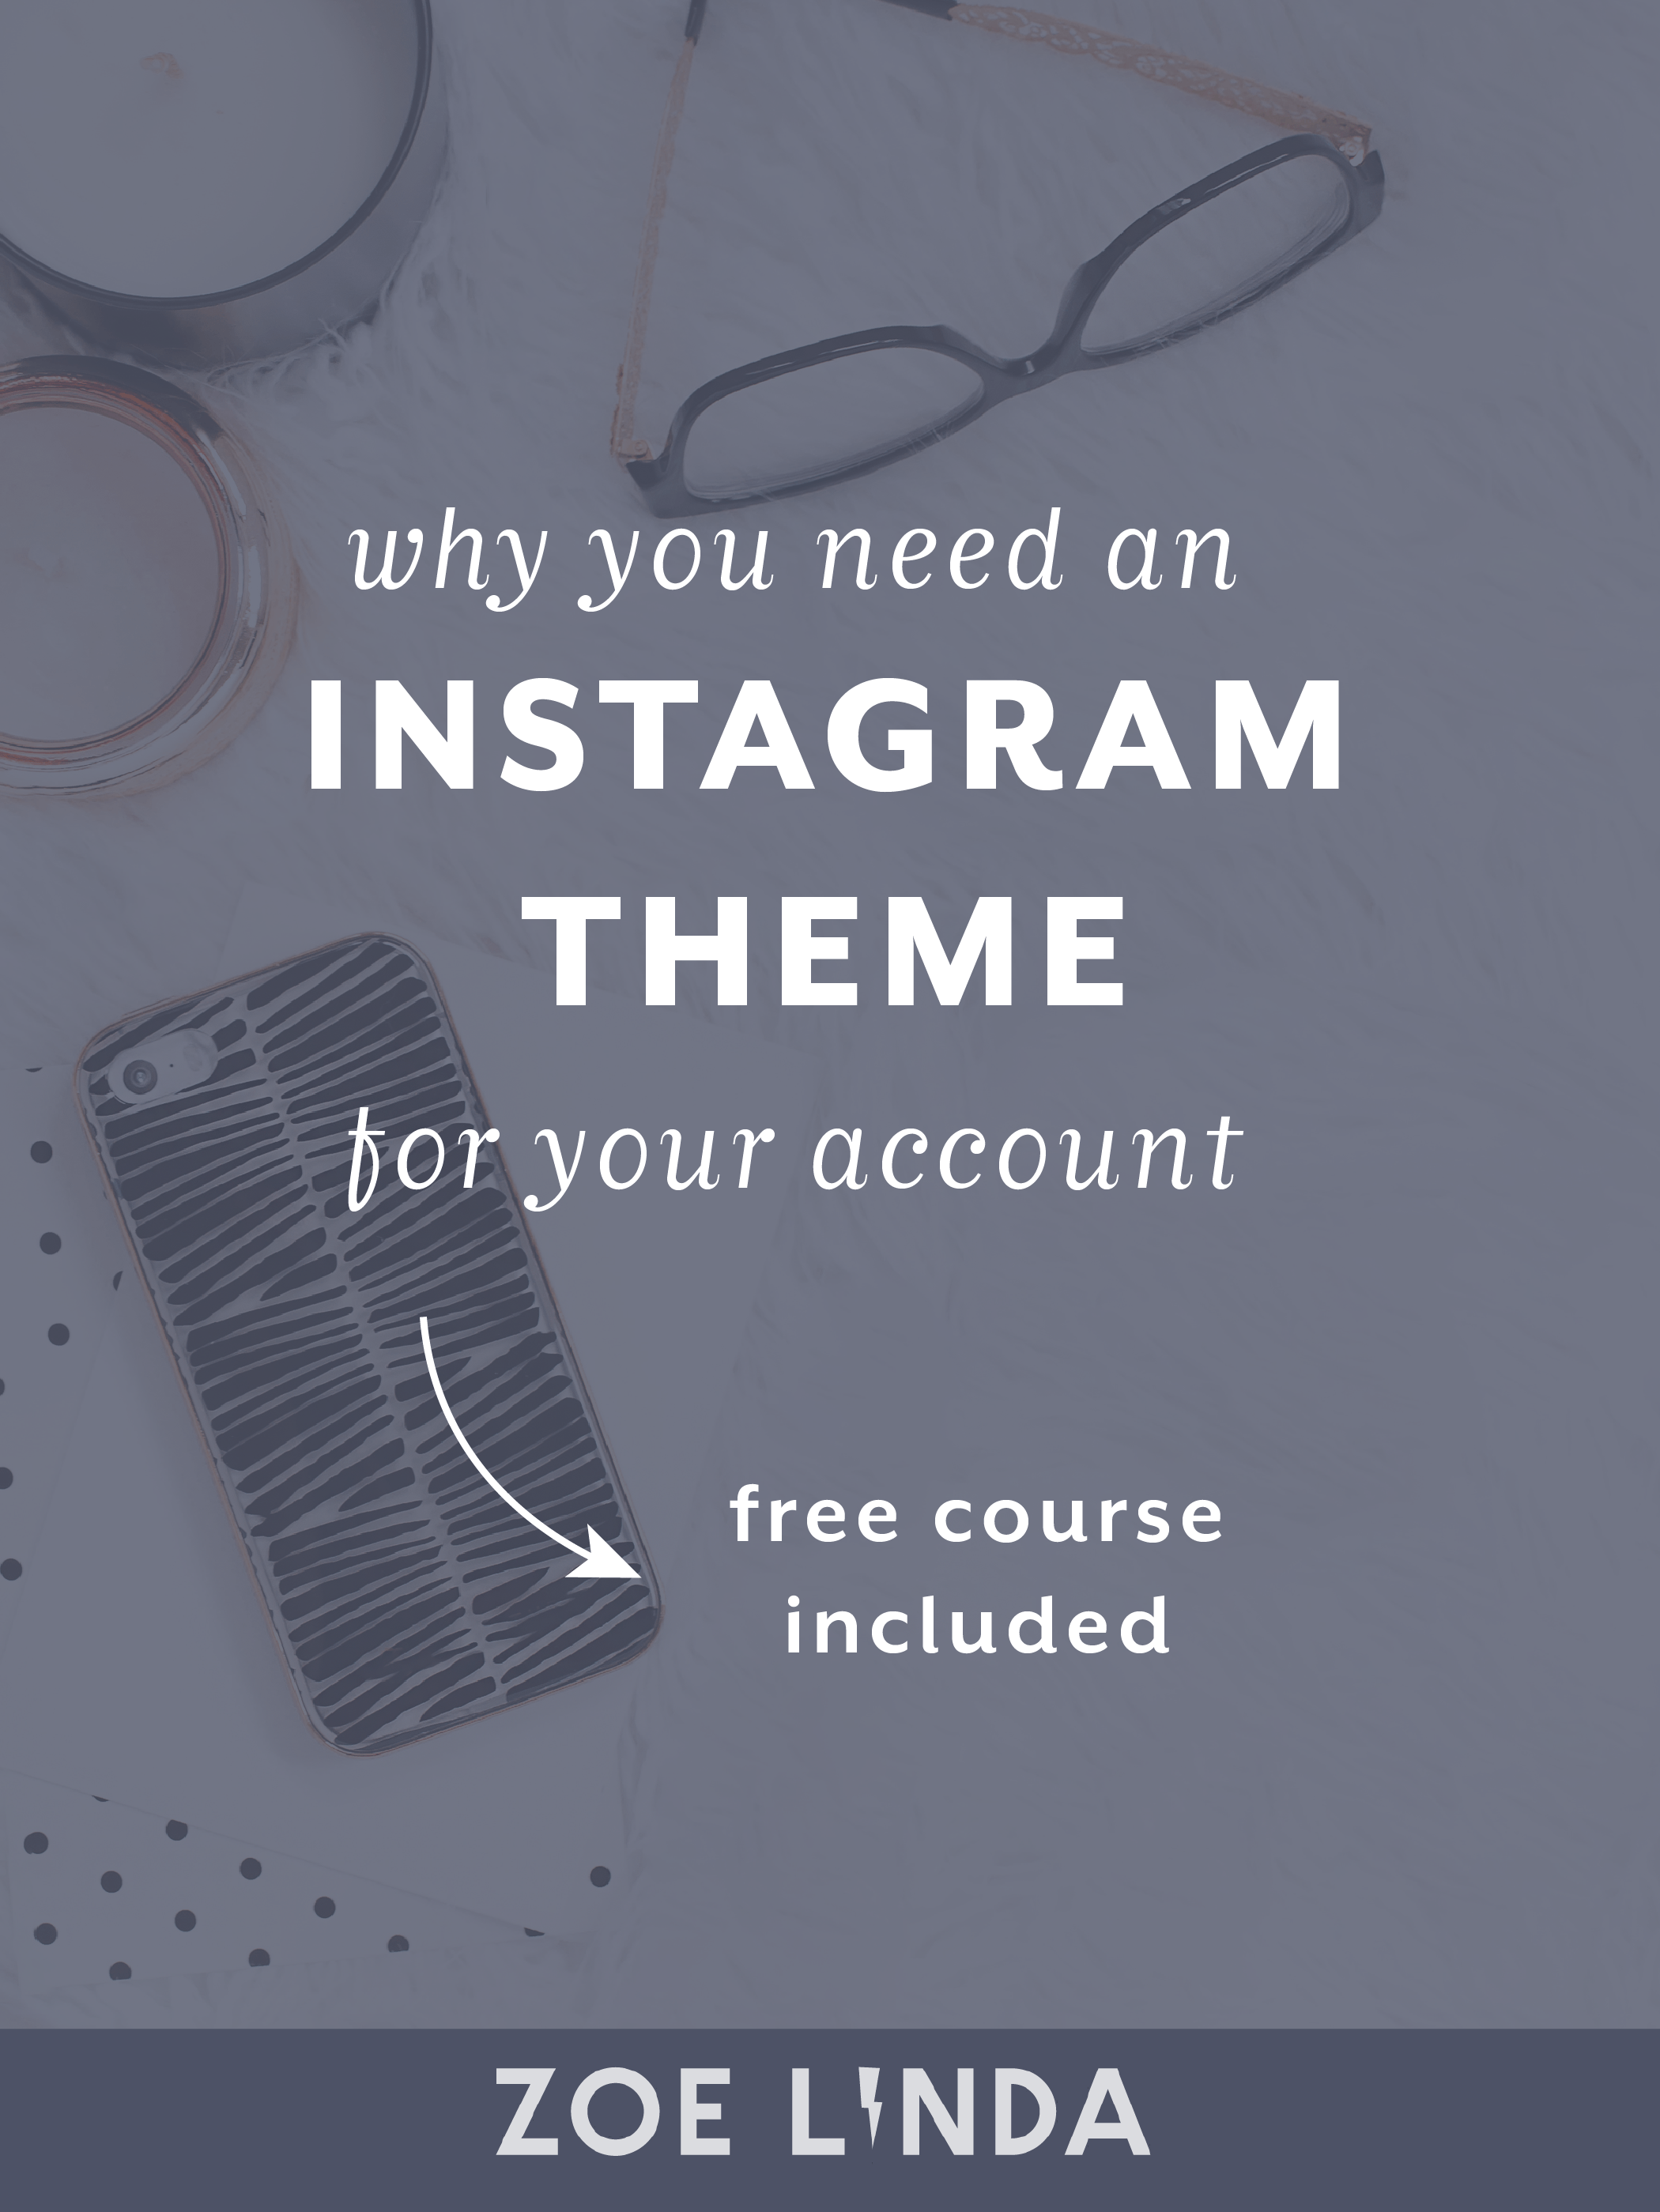 Why Your Instagram Account Needs A Theme (+ Free Email Course To Help You Find Yours) | Struggling to find your own personal Instagram theme? Don't even know if it's worth it? Don't give up! I've got a free 5 day email course just for you! Click through to find your Instagram theme! #instagram #instagrammarketing